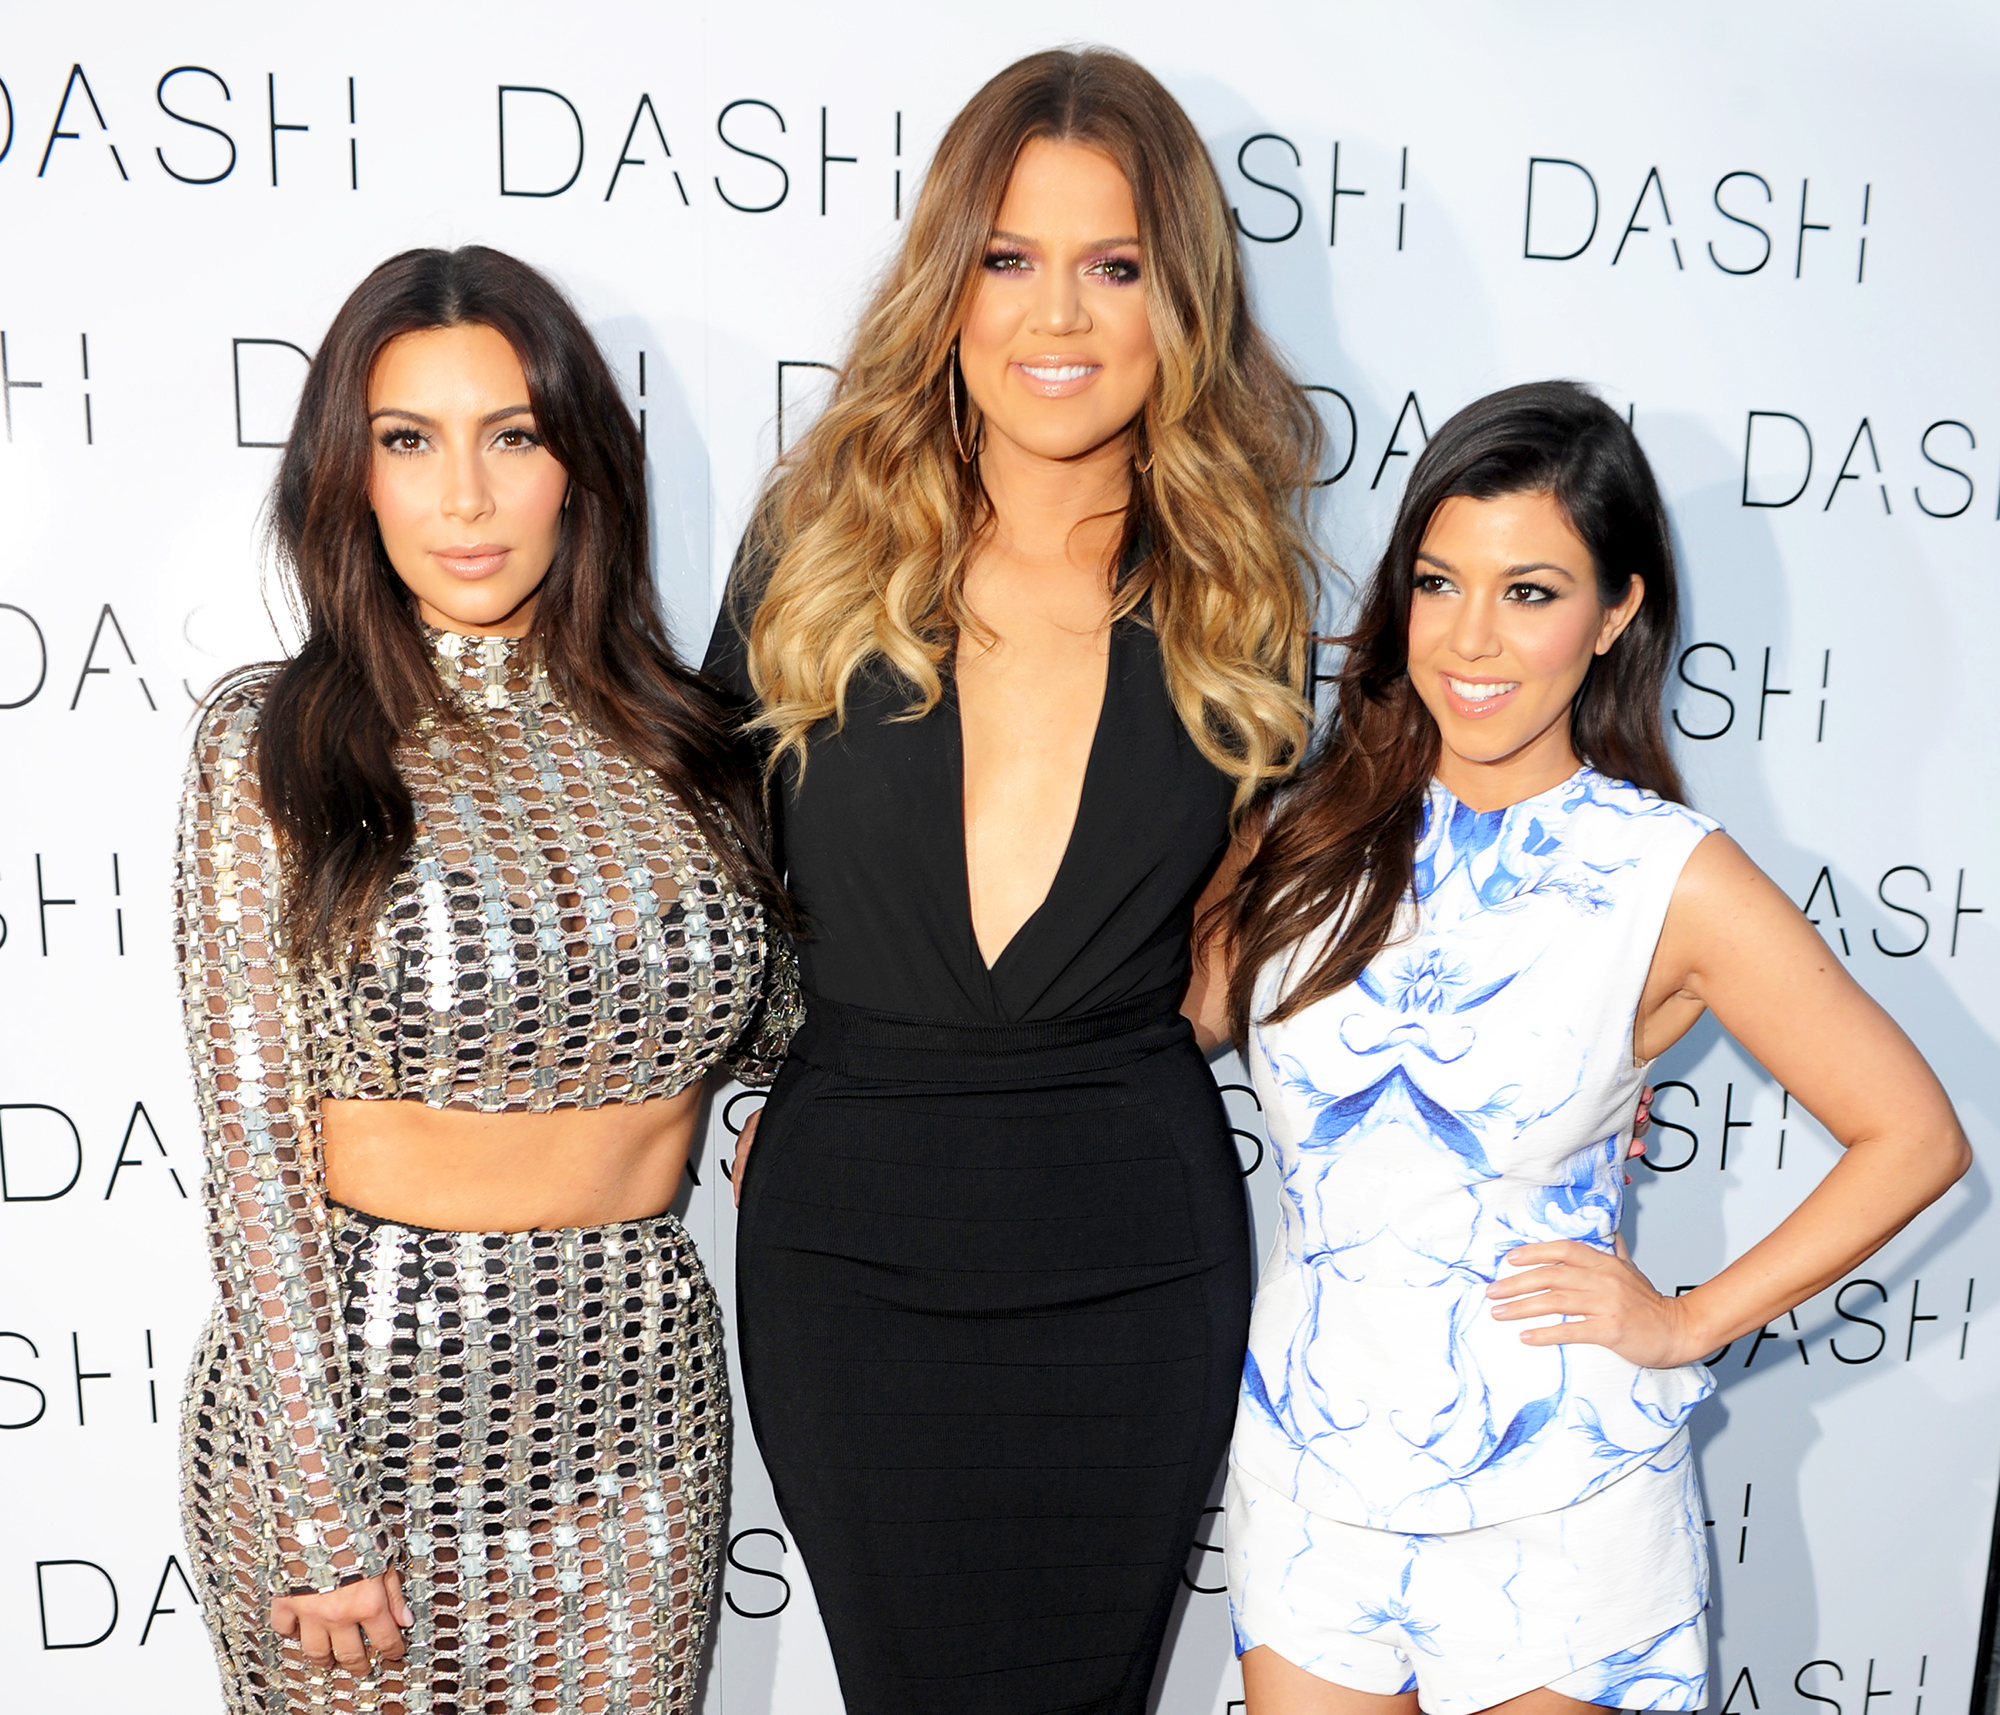 Kardashian-Jenners celebrate Kourtney Kardashian's 39th birthday